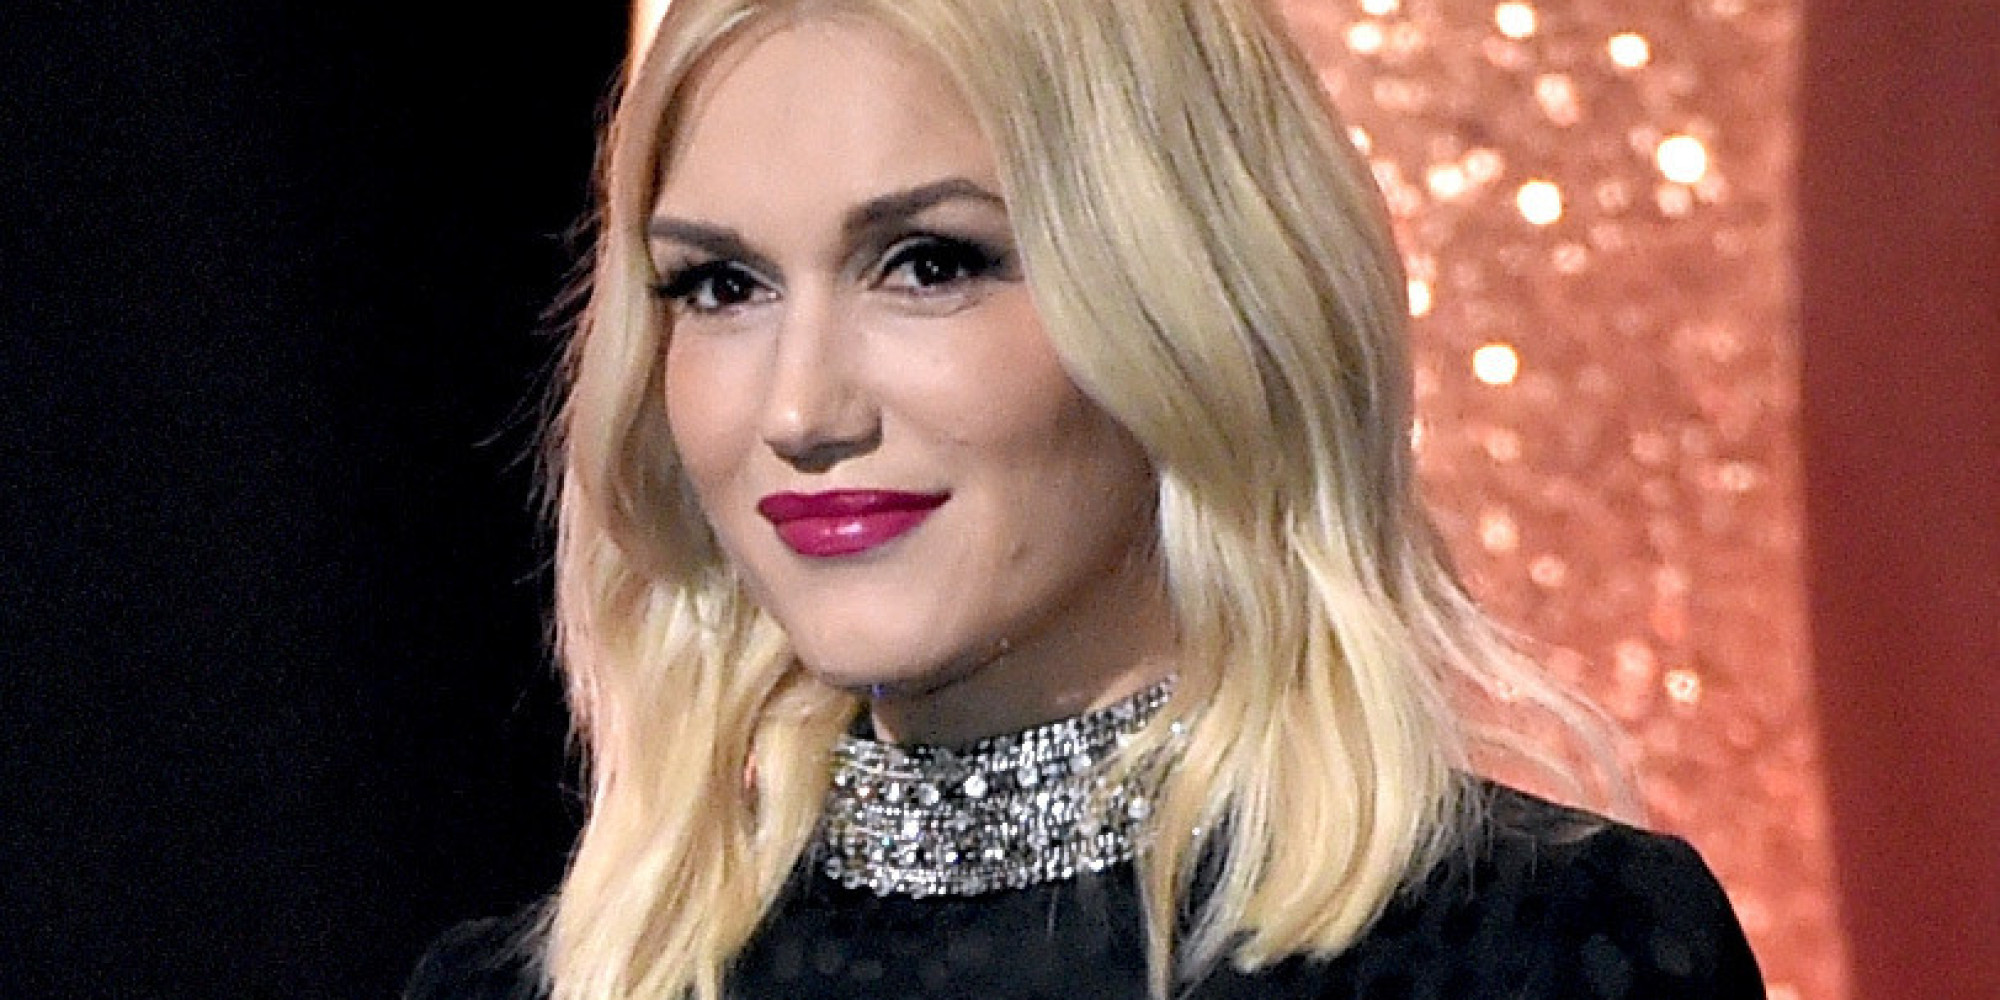 Gwen Stefani Shares A Sweet Breastfeeding Photo On Instagram Gwen Stefani